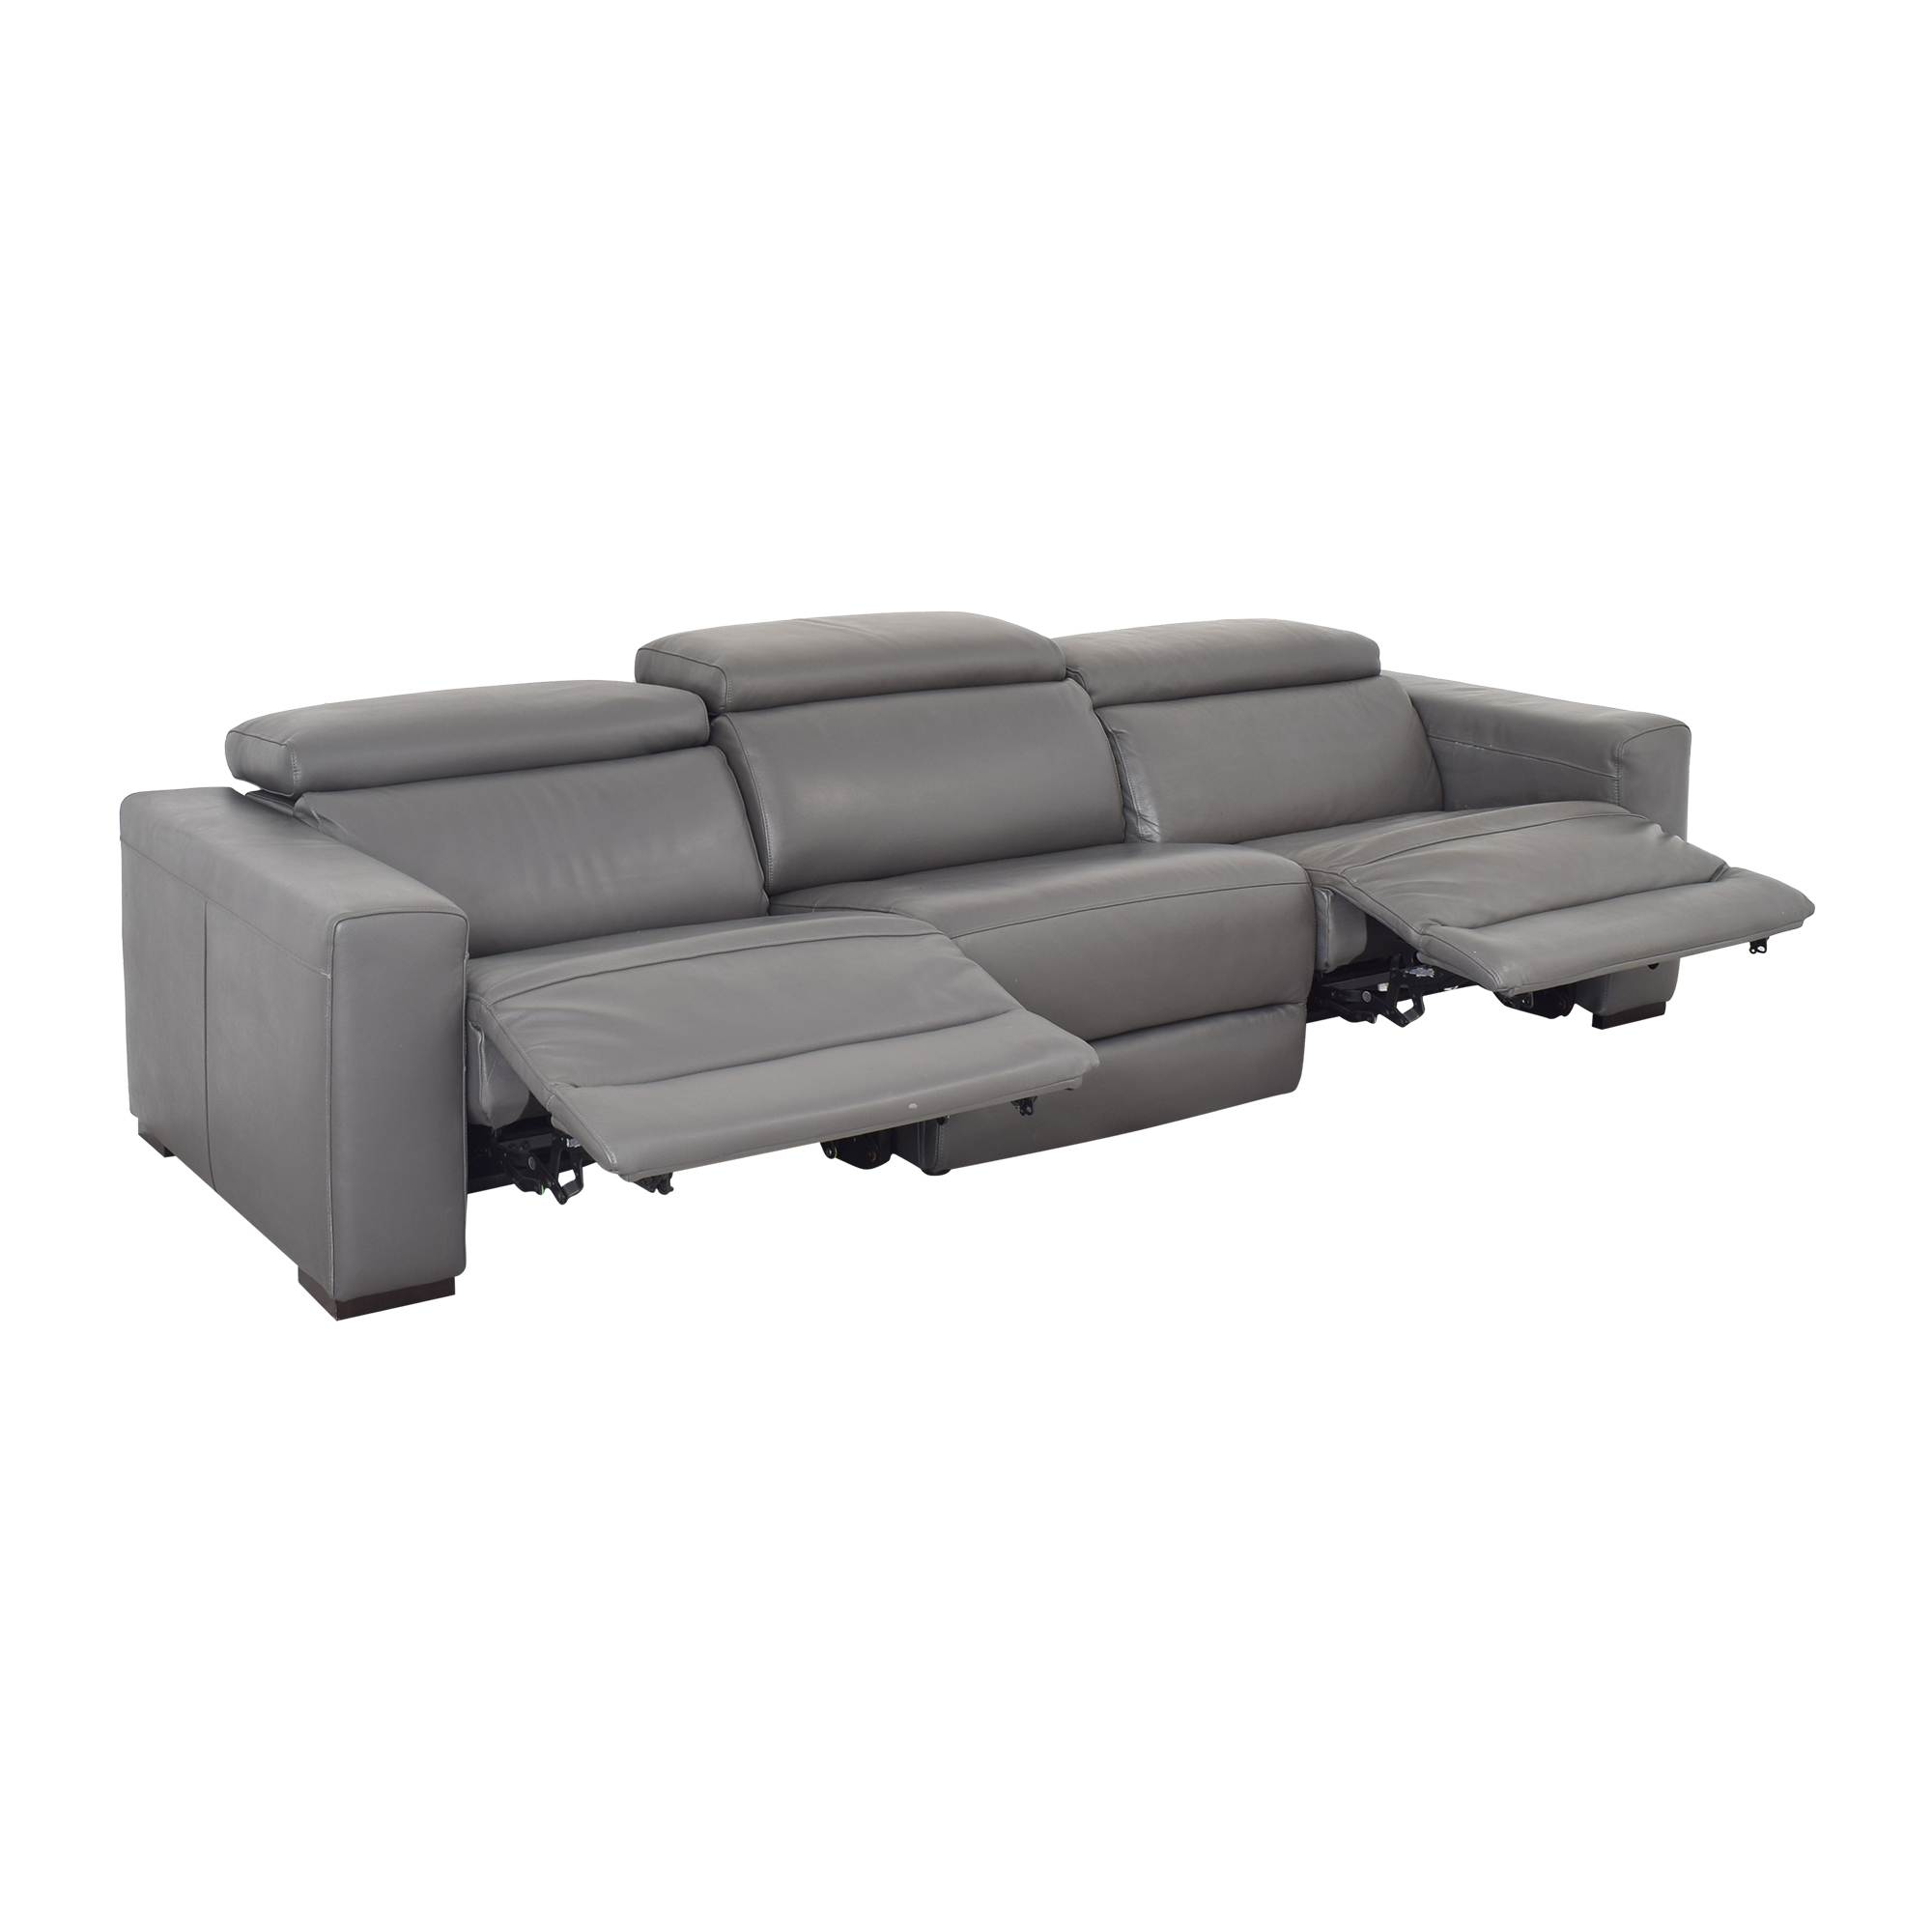 Macy's Macy's Nevio Reclining Sofa second hand